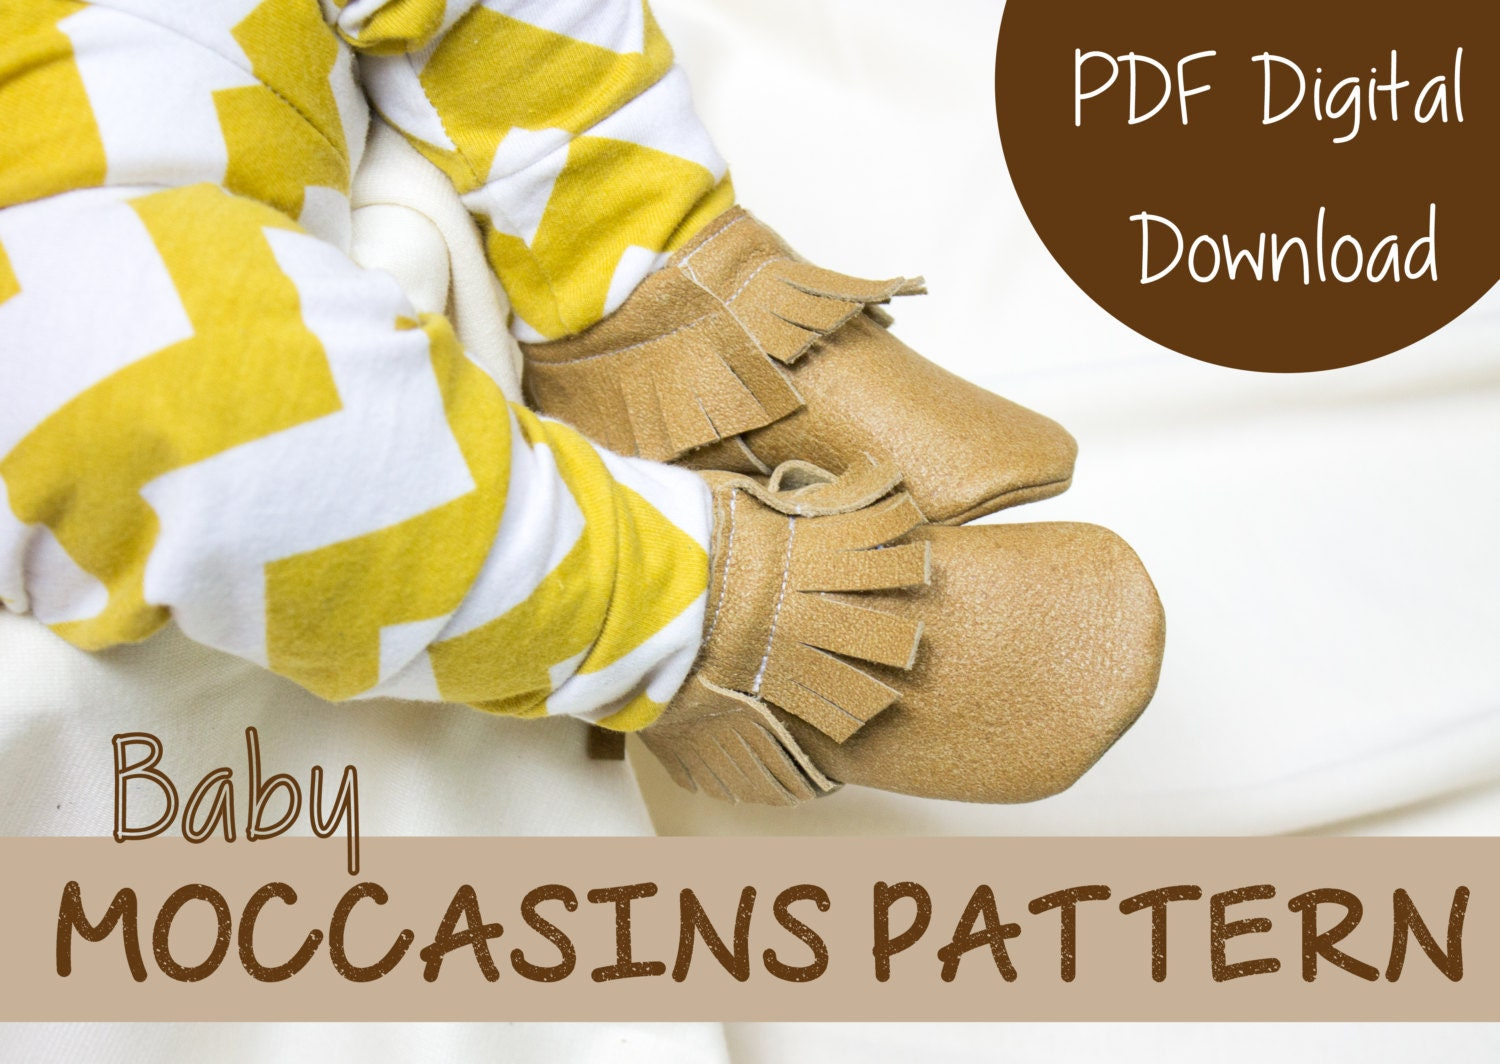 Leather Moccasin Sewing Pattern Baby Shoe Pattern Instant